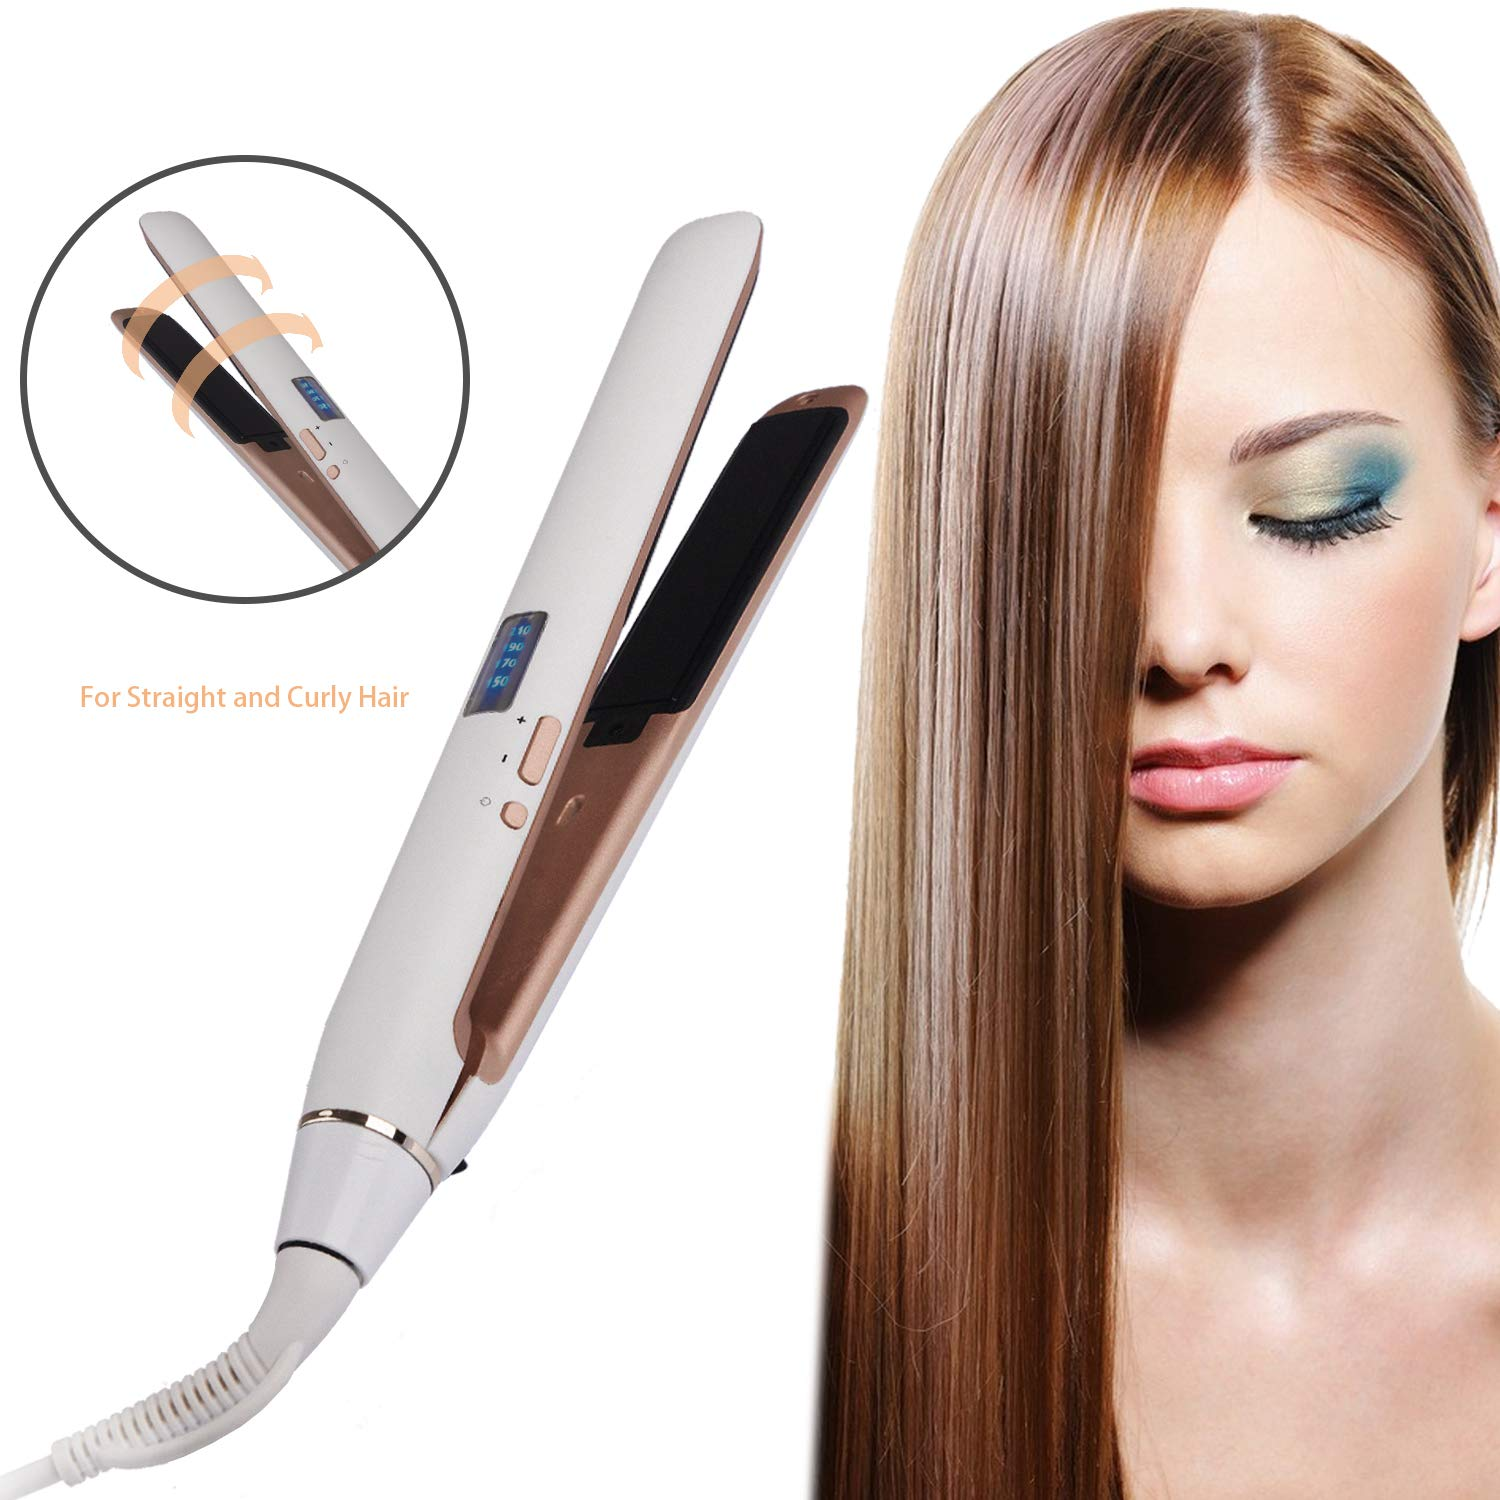 BESTBOMG Professional Ceramic Tourmaline Ionic Flat Iron Hair Straightener 110v-220v Worldwide Dual Voltage LED Display Adjustable Temperature Suitable for All Hair Types with Incl Glove Heats Up Fast